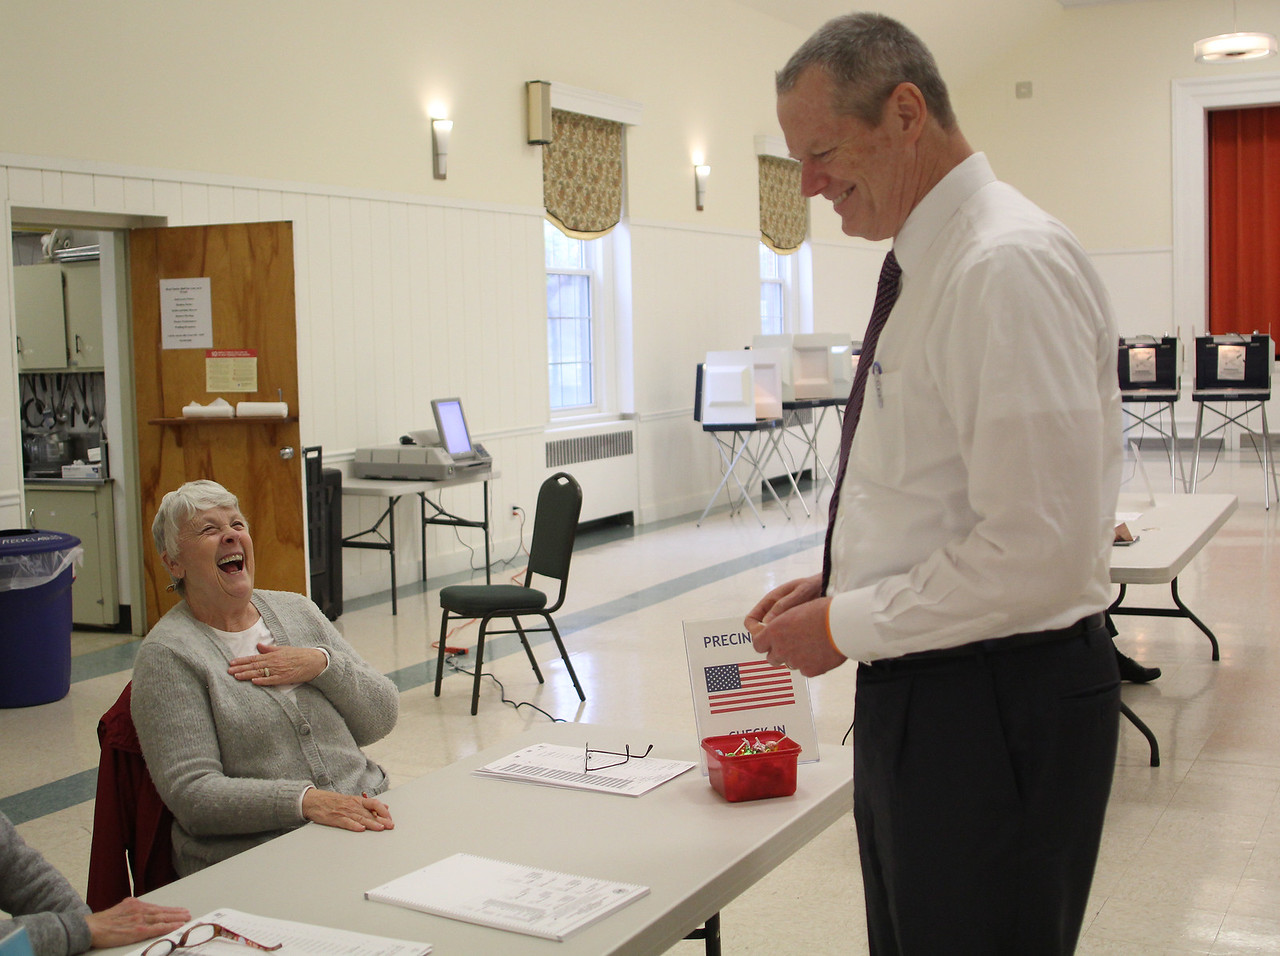 Swampscott, Ma. 4-25-17. Governor Charlie Baker jokes with pole worker Corinne Mannetta as he checks out after voting today at the First Church Congregational in Swampscott.